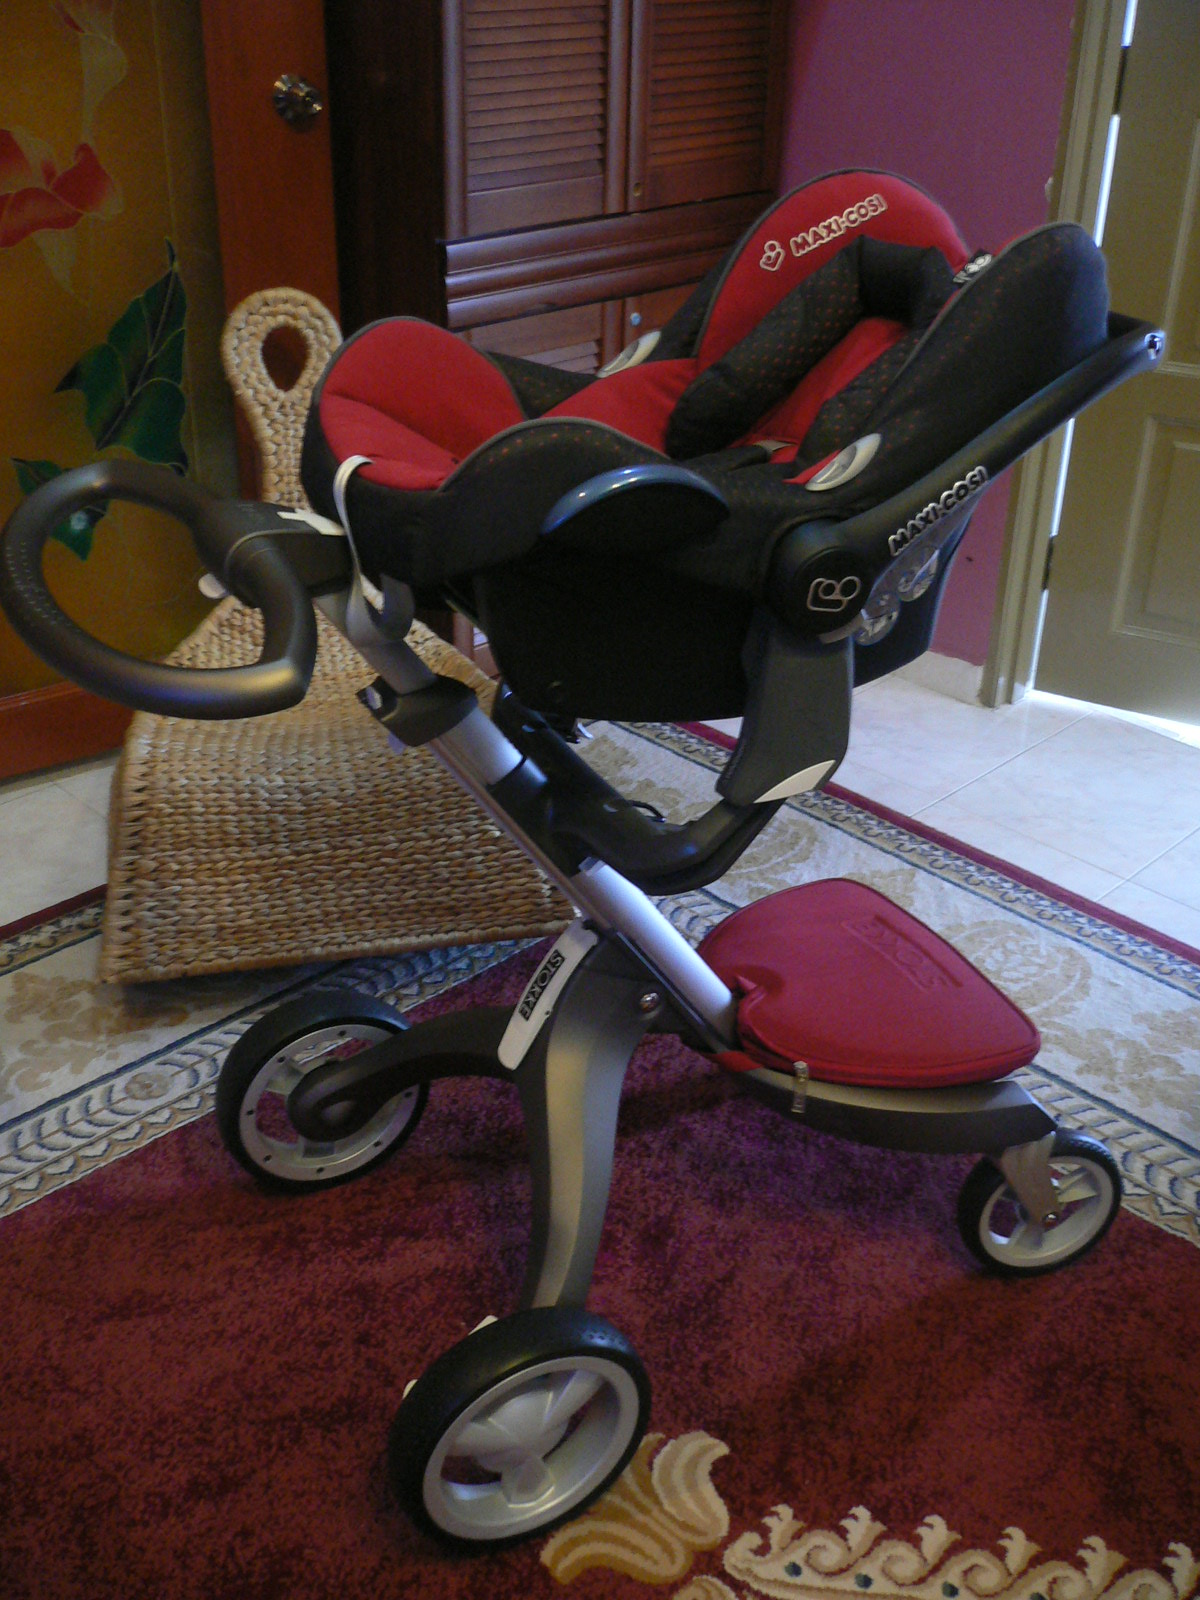 Stokke Maxi Cosi Car Seat Yaz Very Own Strollers Safe Haven Cabrio On The Stokke Xplory